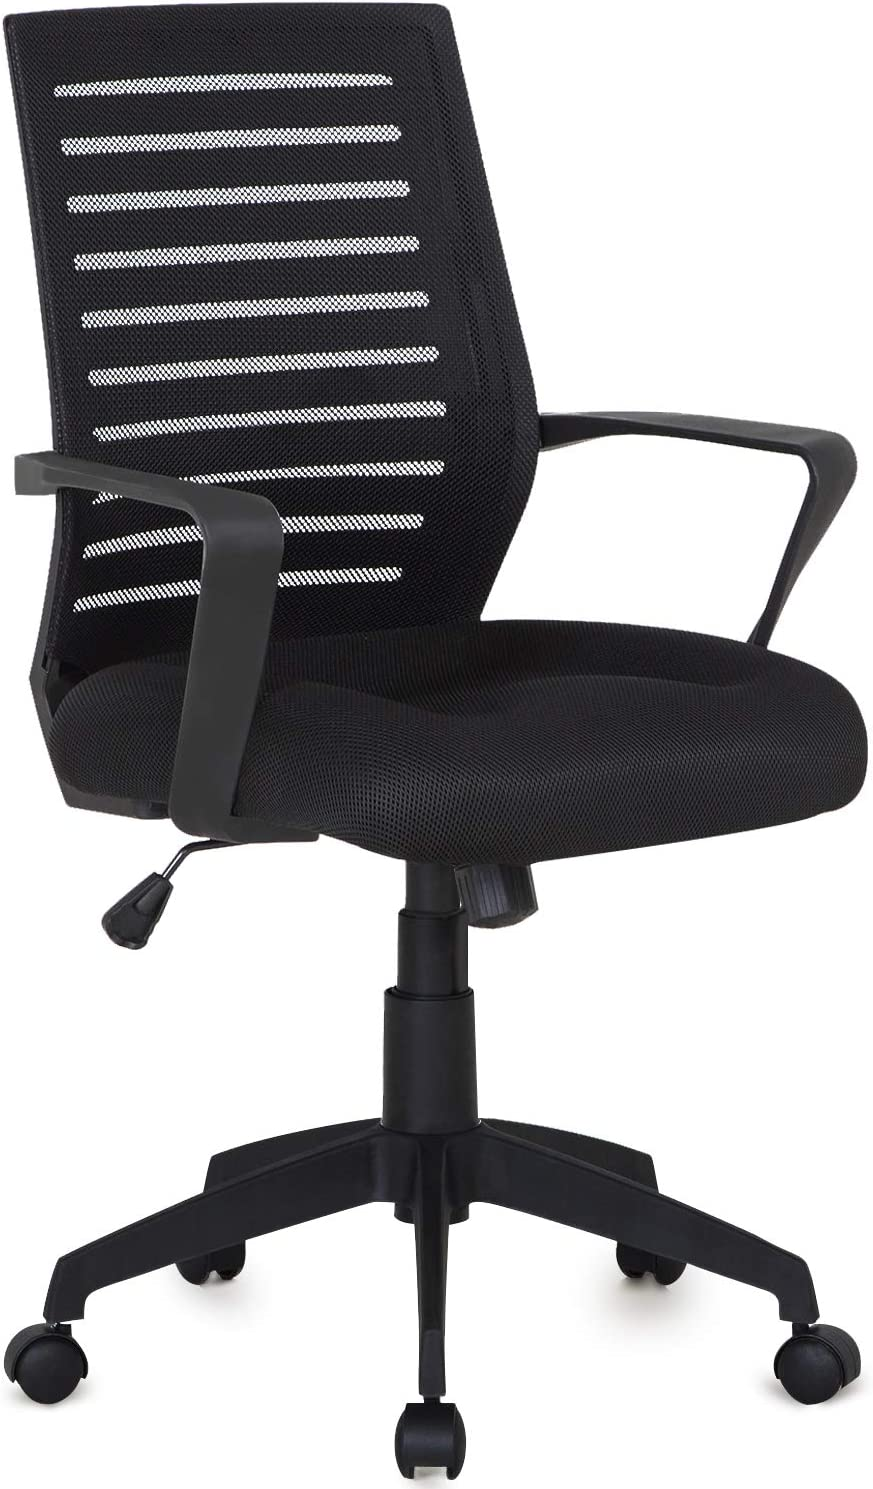 VECELO With 3D Surround Padded Seat Cushion For Task Desk Home Office Work, Black